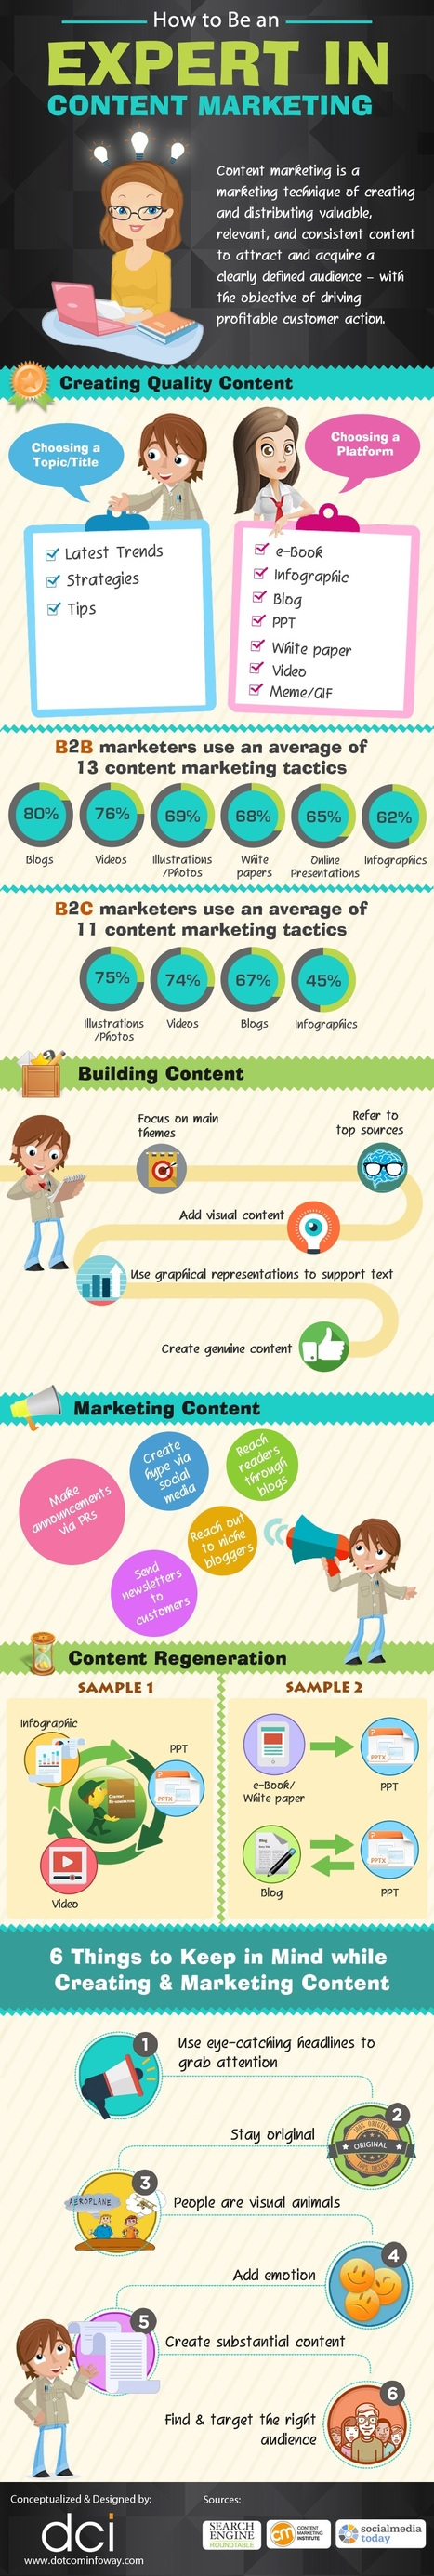 How to Be an Expert in Content Marketing #Infographic | MarketingHits | Scoop.it